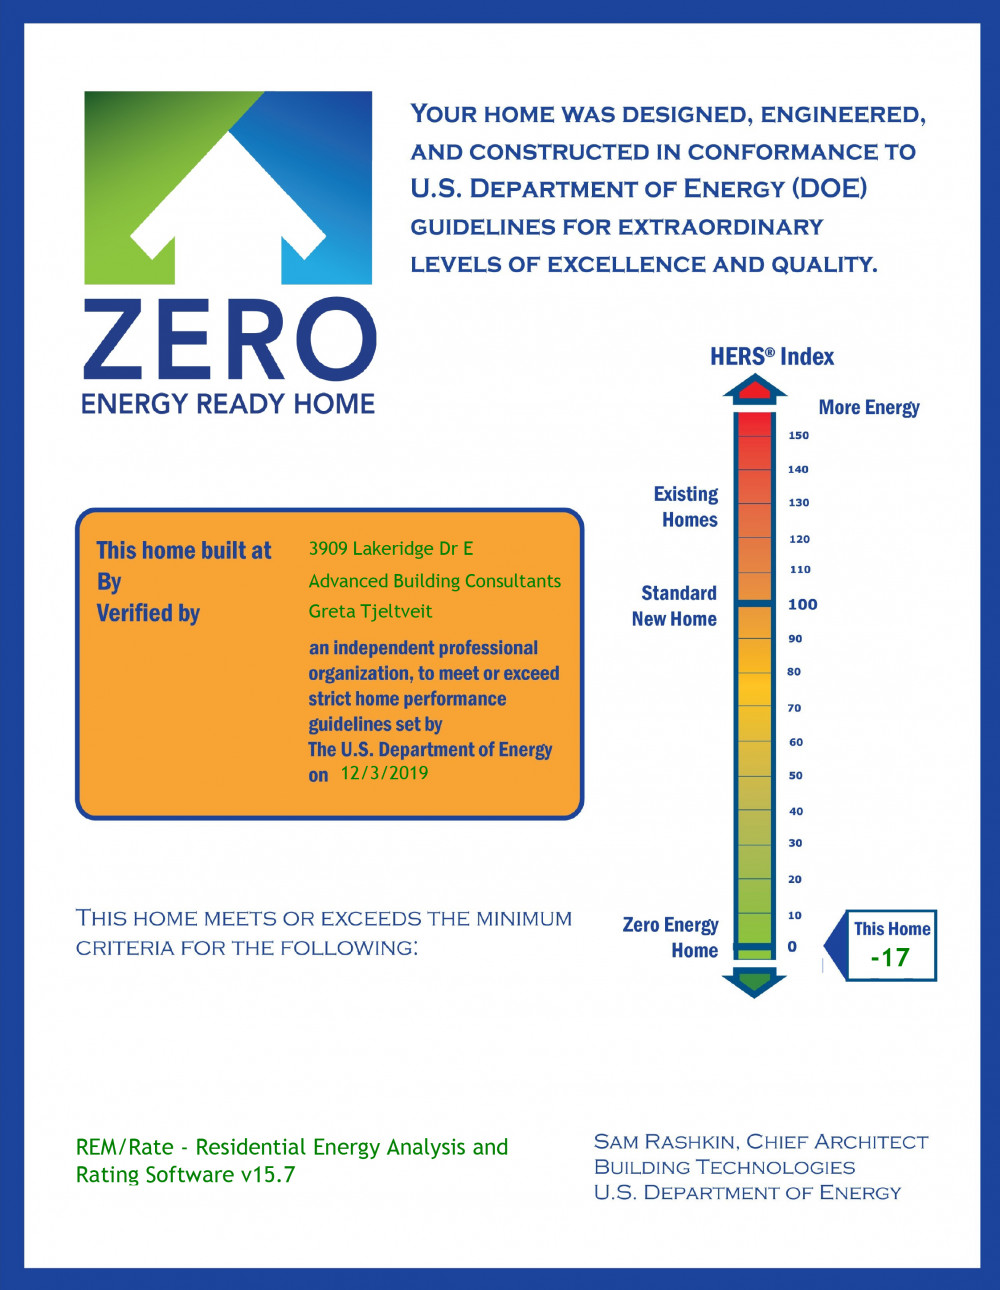 Bozeman Architect's Journal - HERS Index:  The Home Energy Rating System